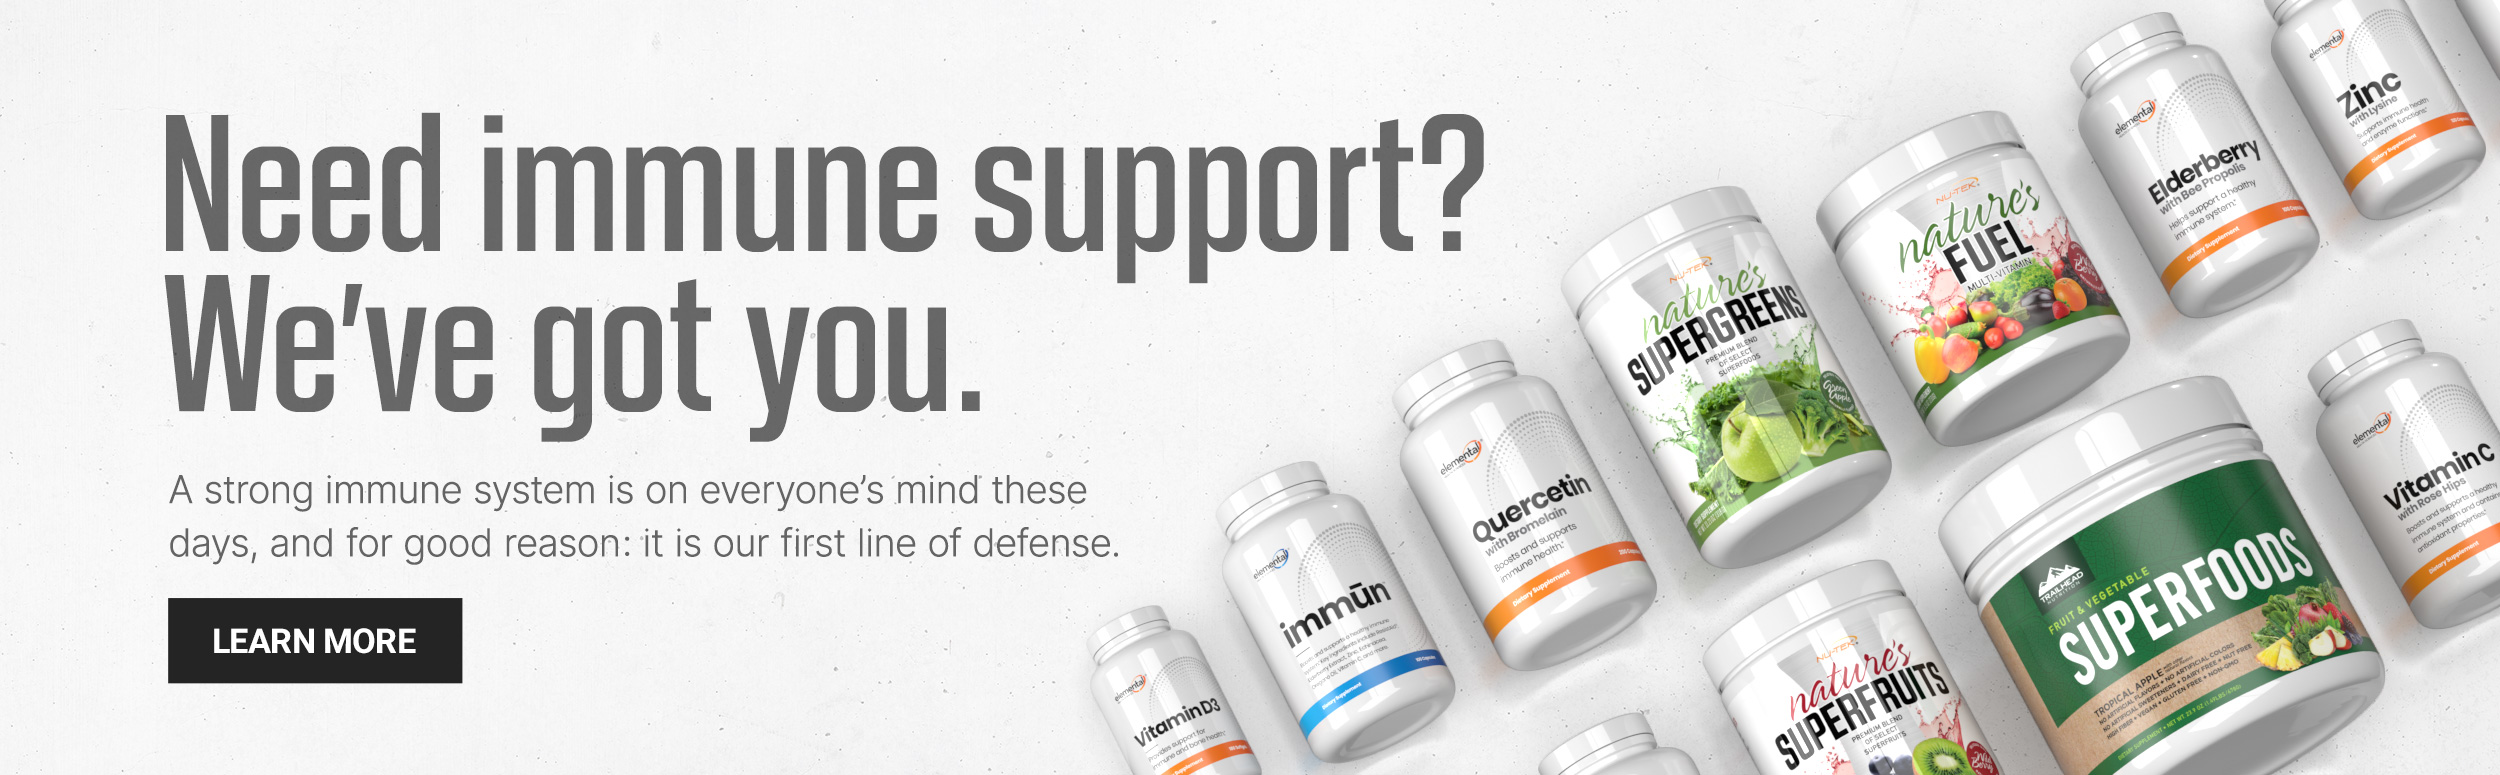 Need immune support? We've got you.